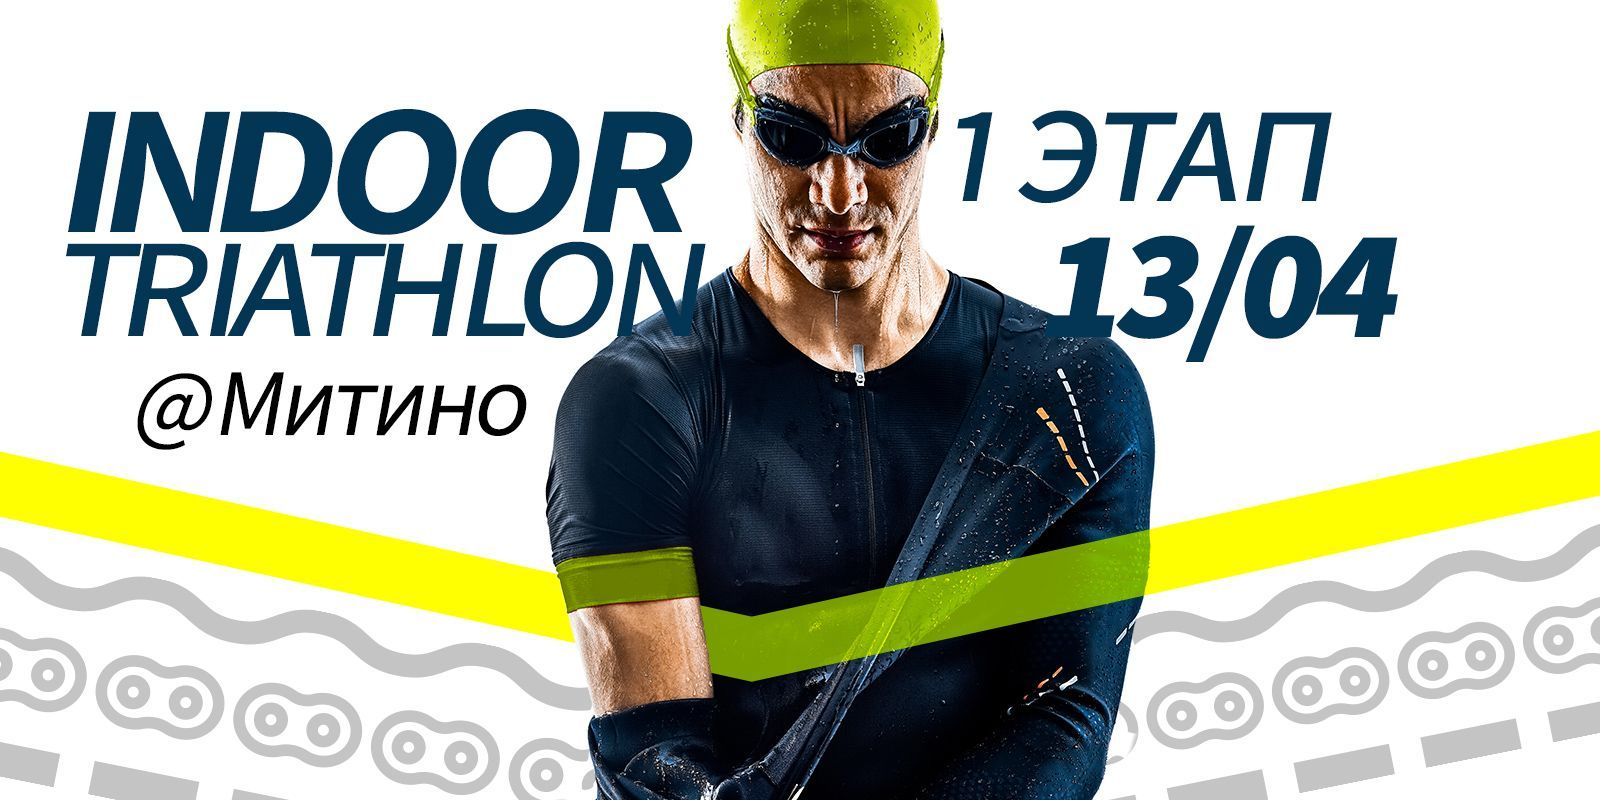 WEGYM INDOOR TRIATHLON  2019